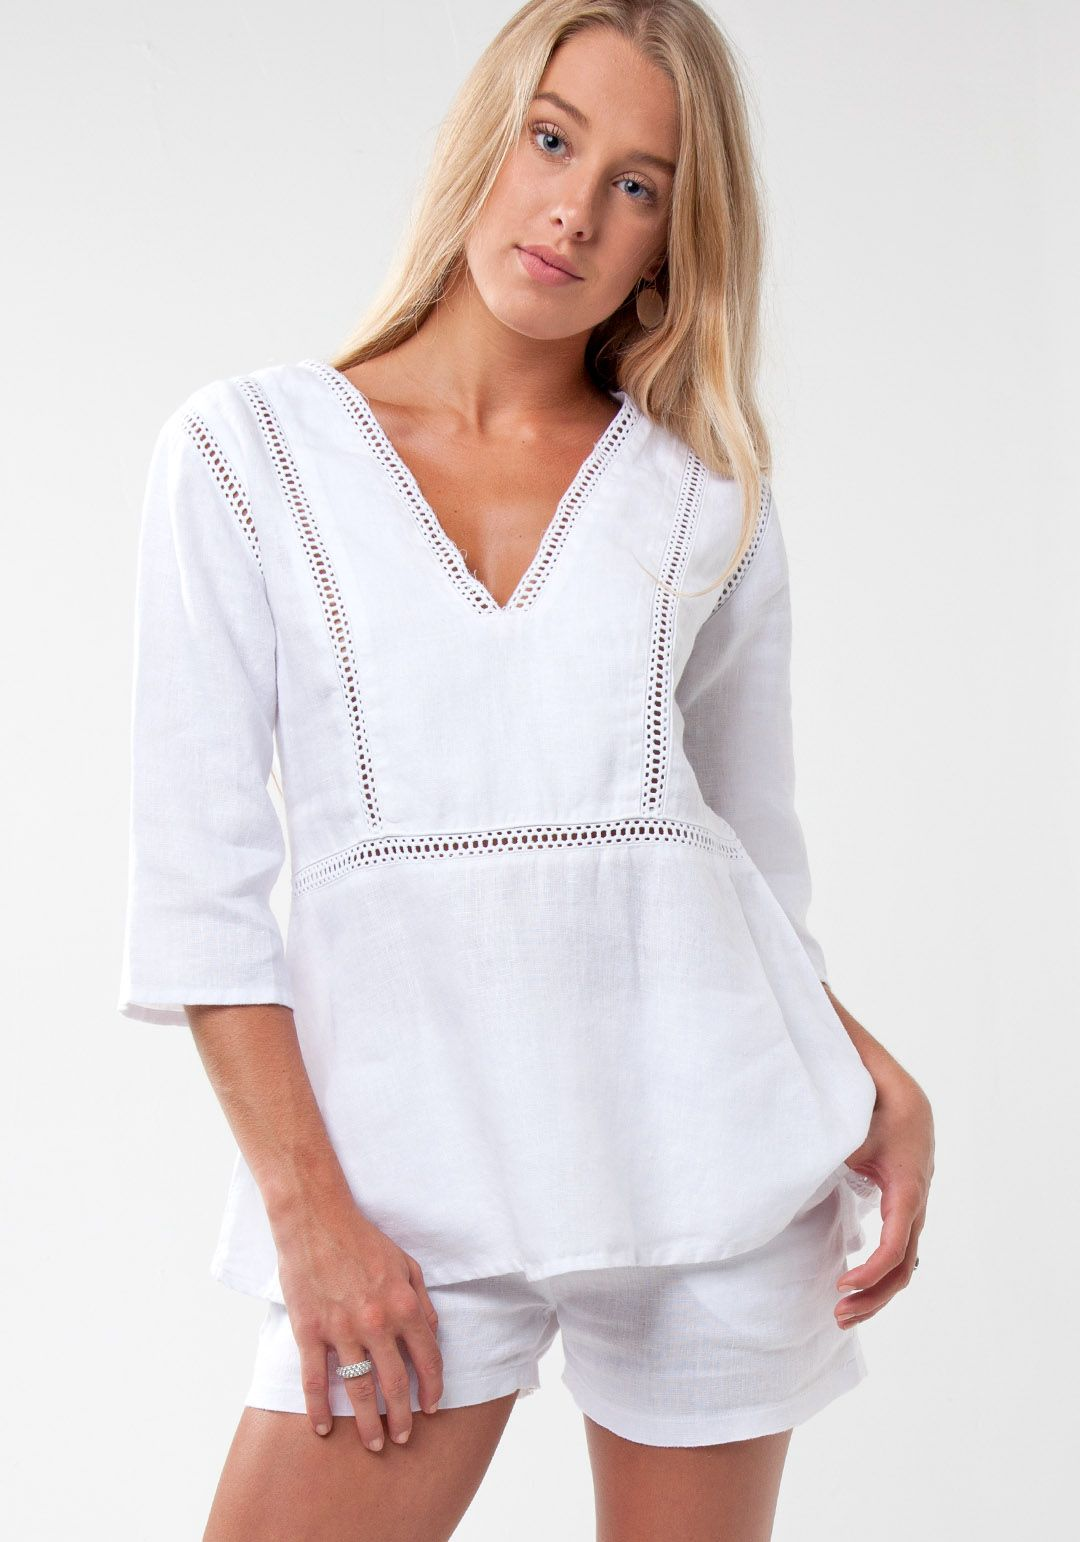 497ba140e1a65 100% Linen V-Neck Blouse with Lace in White in 2019